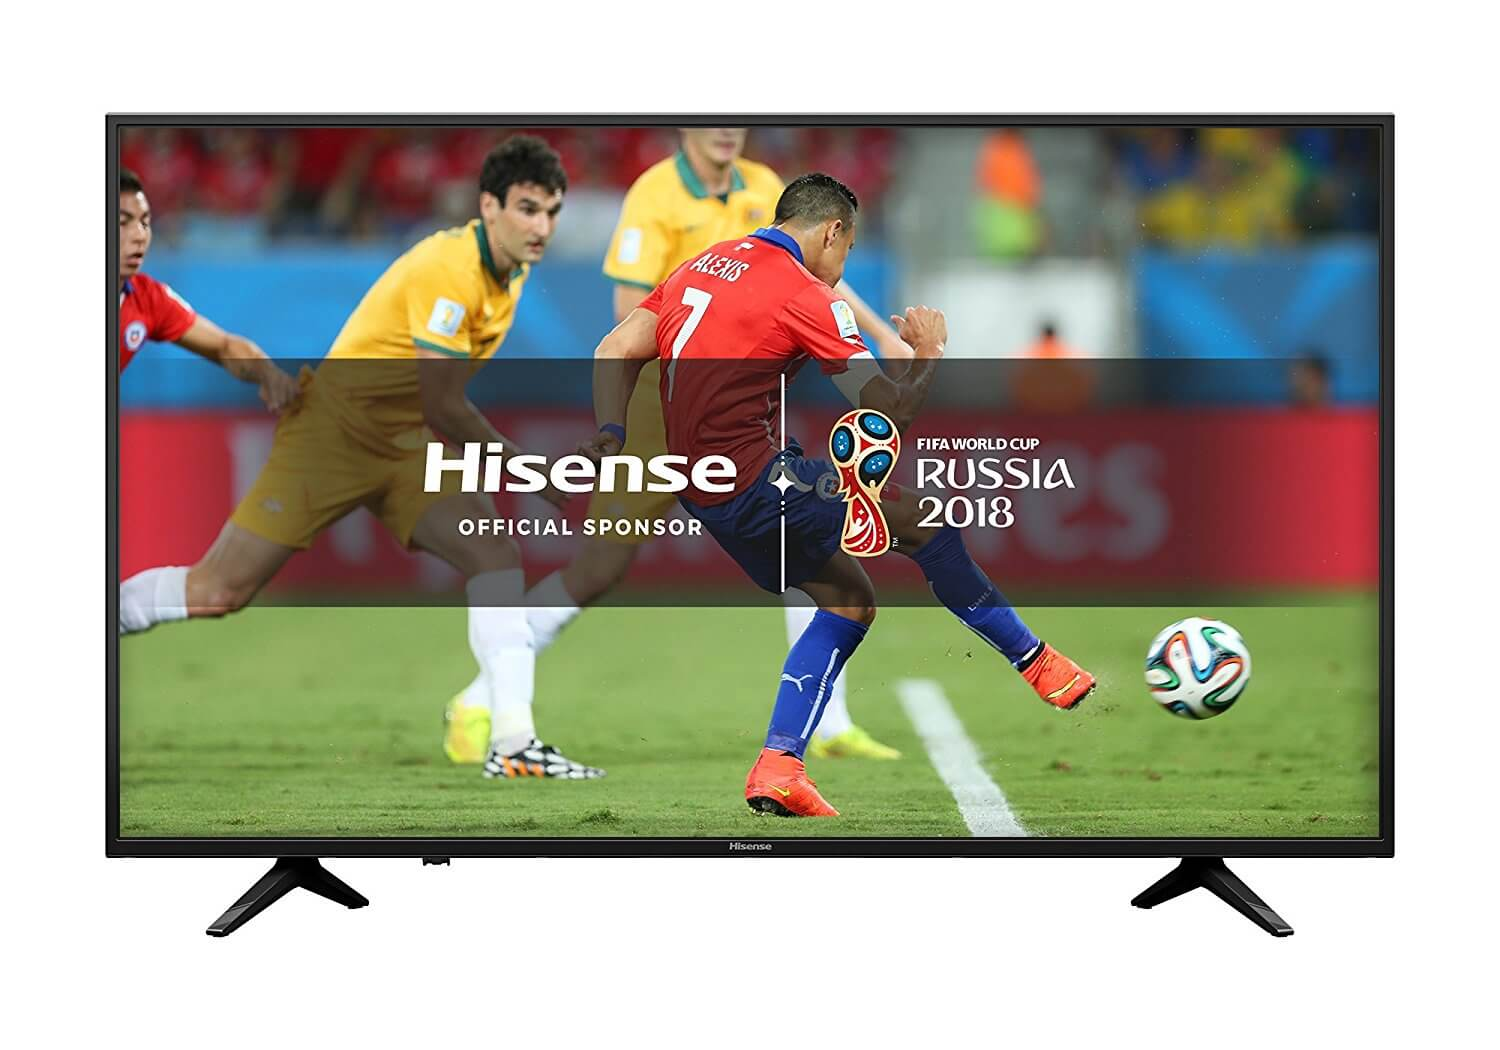 Hisense A6200 H43A6200UK 43-Inch 4K Ultra HD Smart TV Freeview Play 2018 Model Best 4K Ultra HD Smart LED TV 2018 Under £400